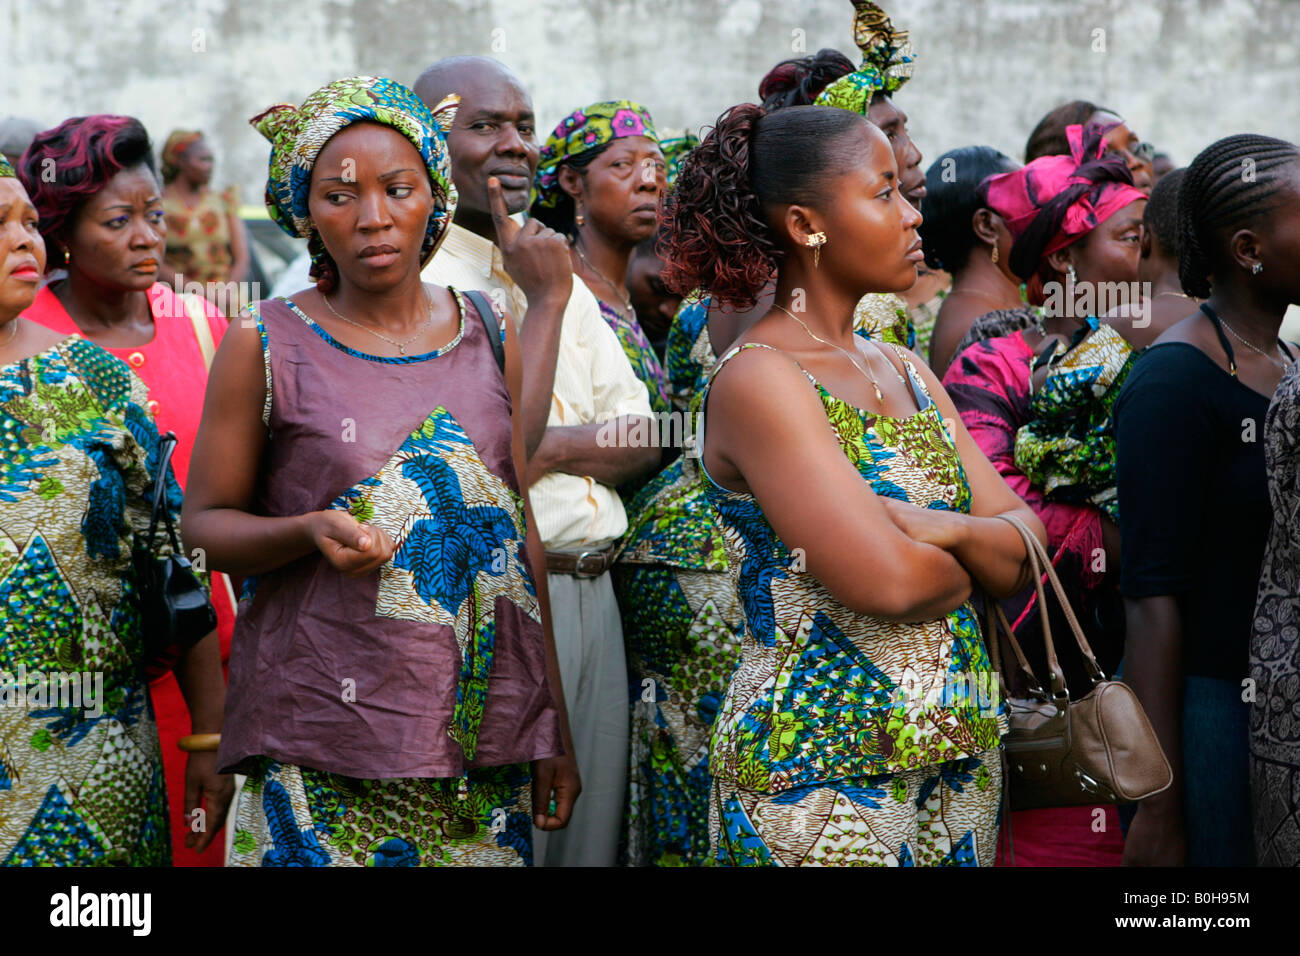 Wedding guests, Douala, Cameroon, Africa - Stock Image